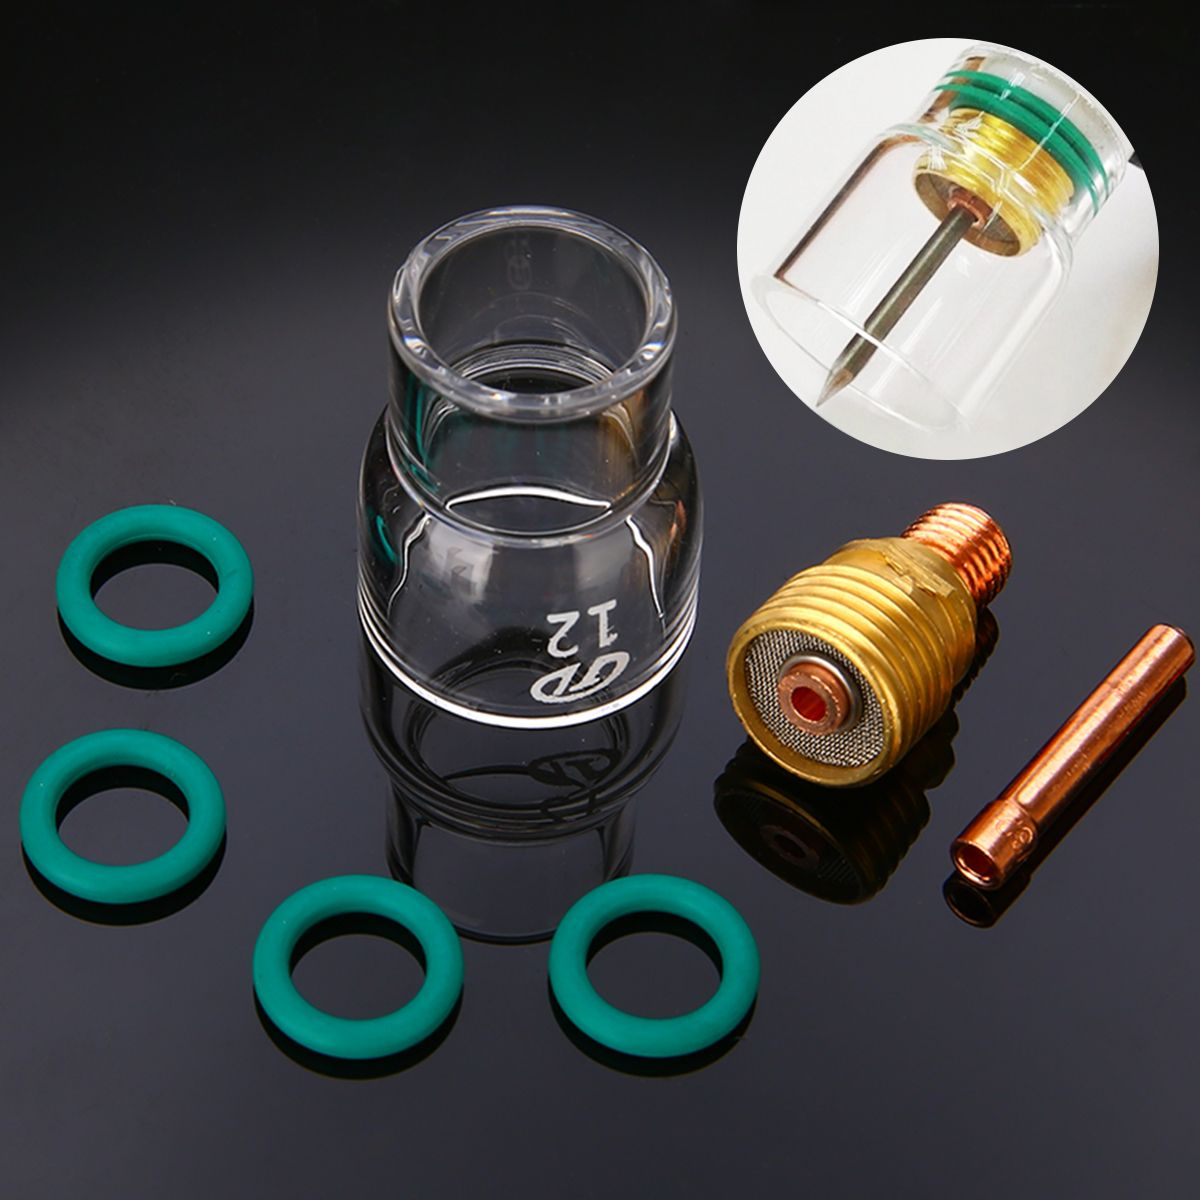 Tig welding gas lense cup collet kit for wp 9 20 25 torch bodies